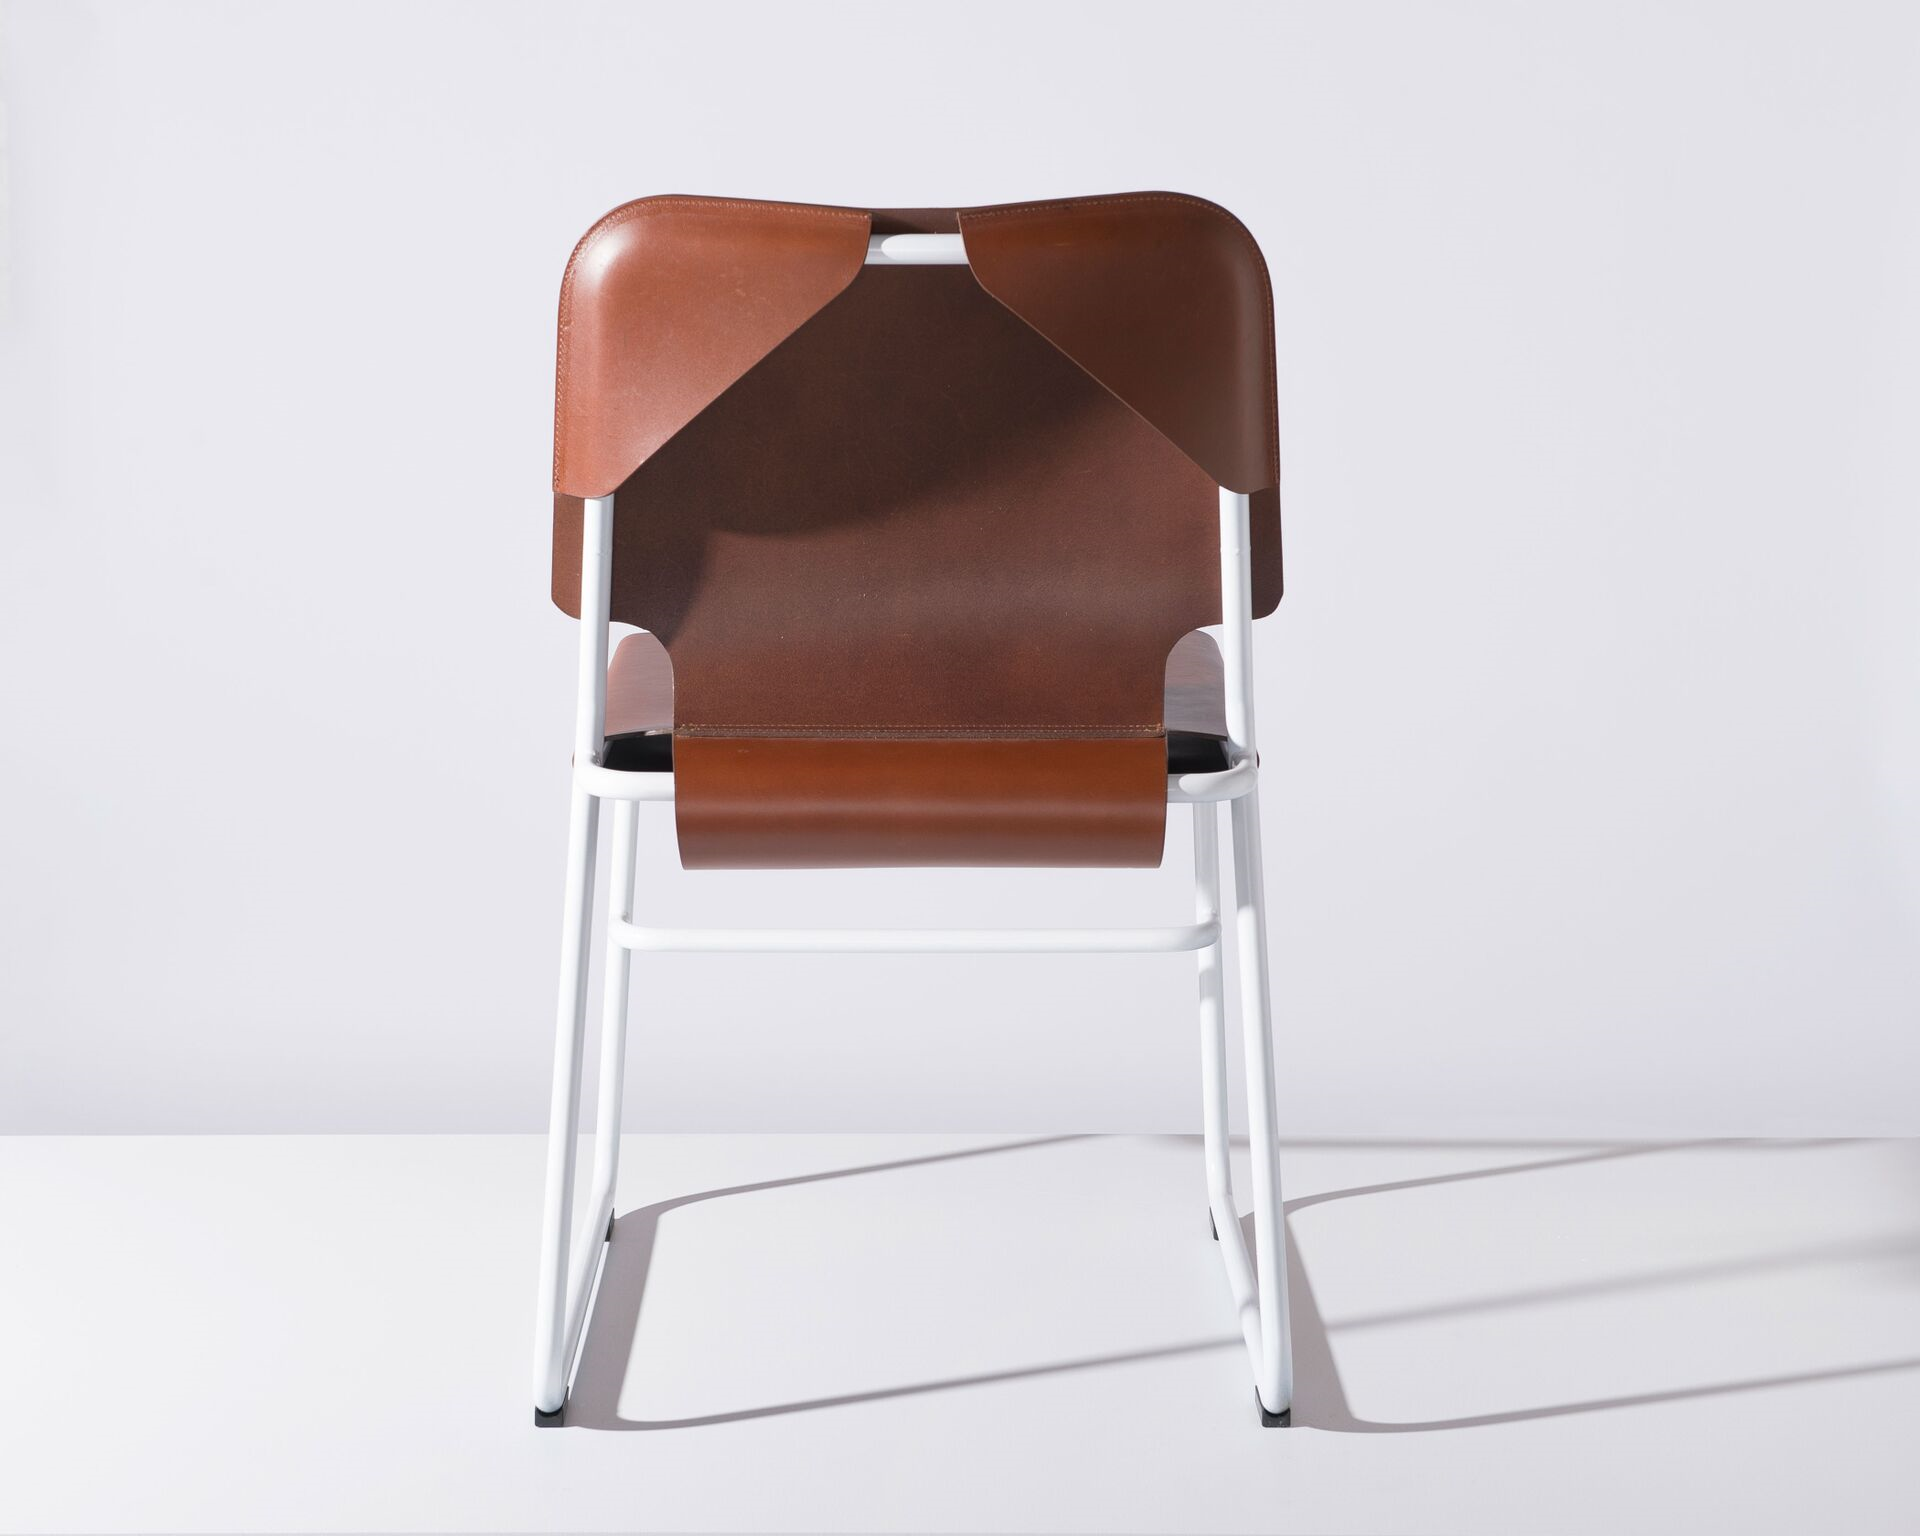 Local Melbourne furniture products